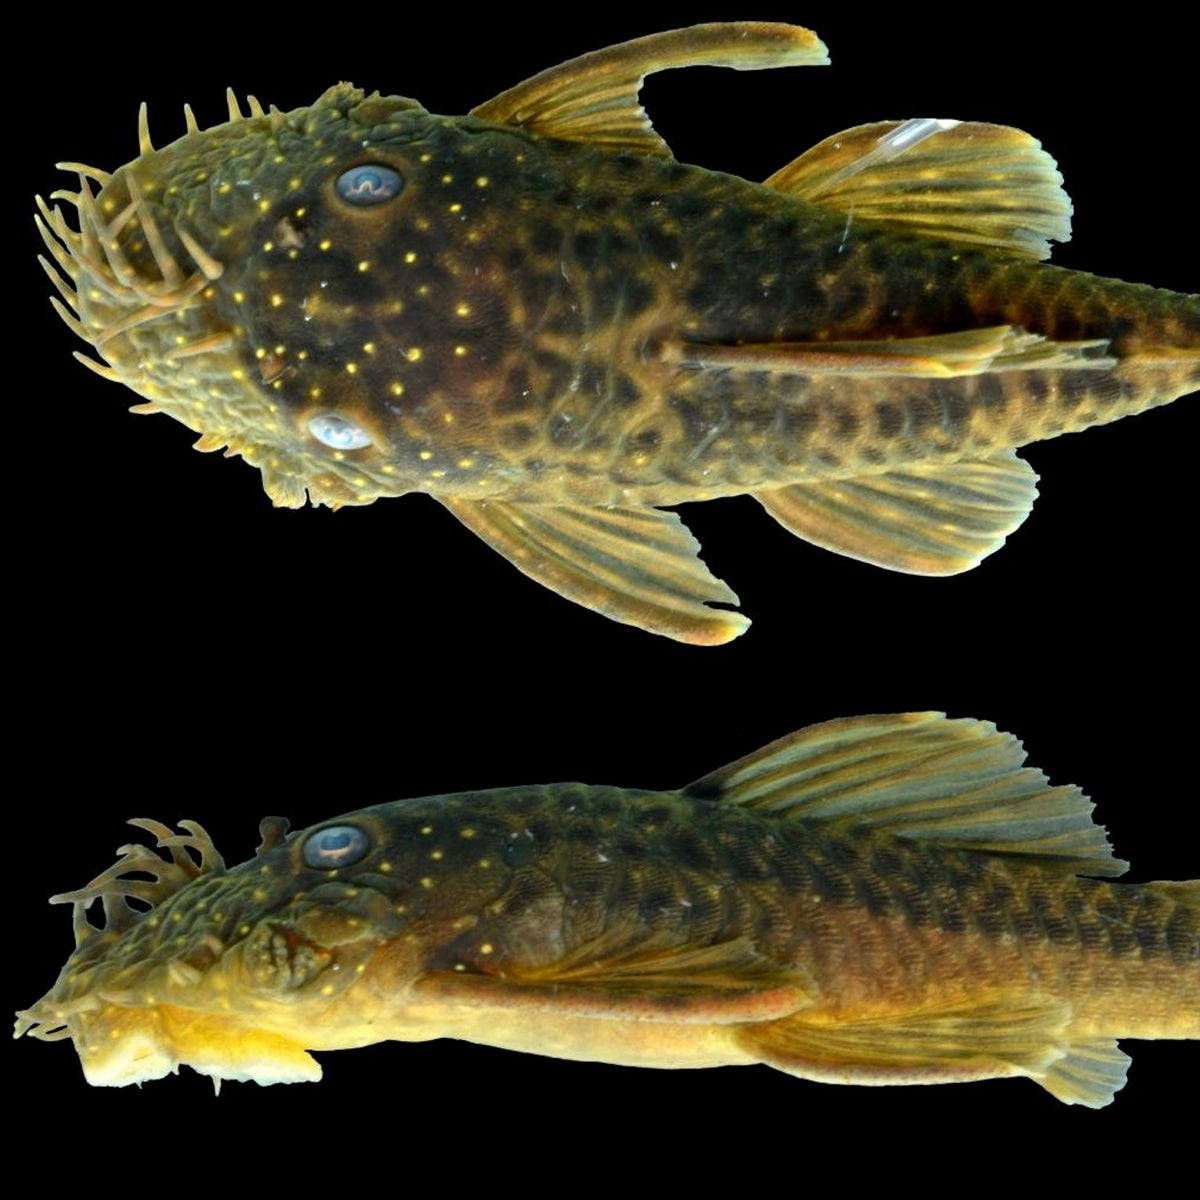 Newly discovered catfish named for Connie Keller, a supporter of conservation science